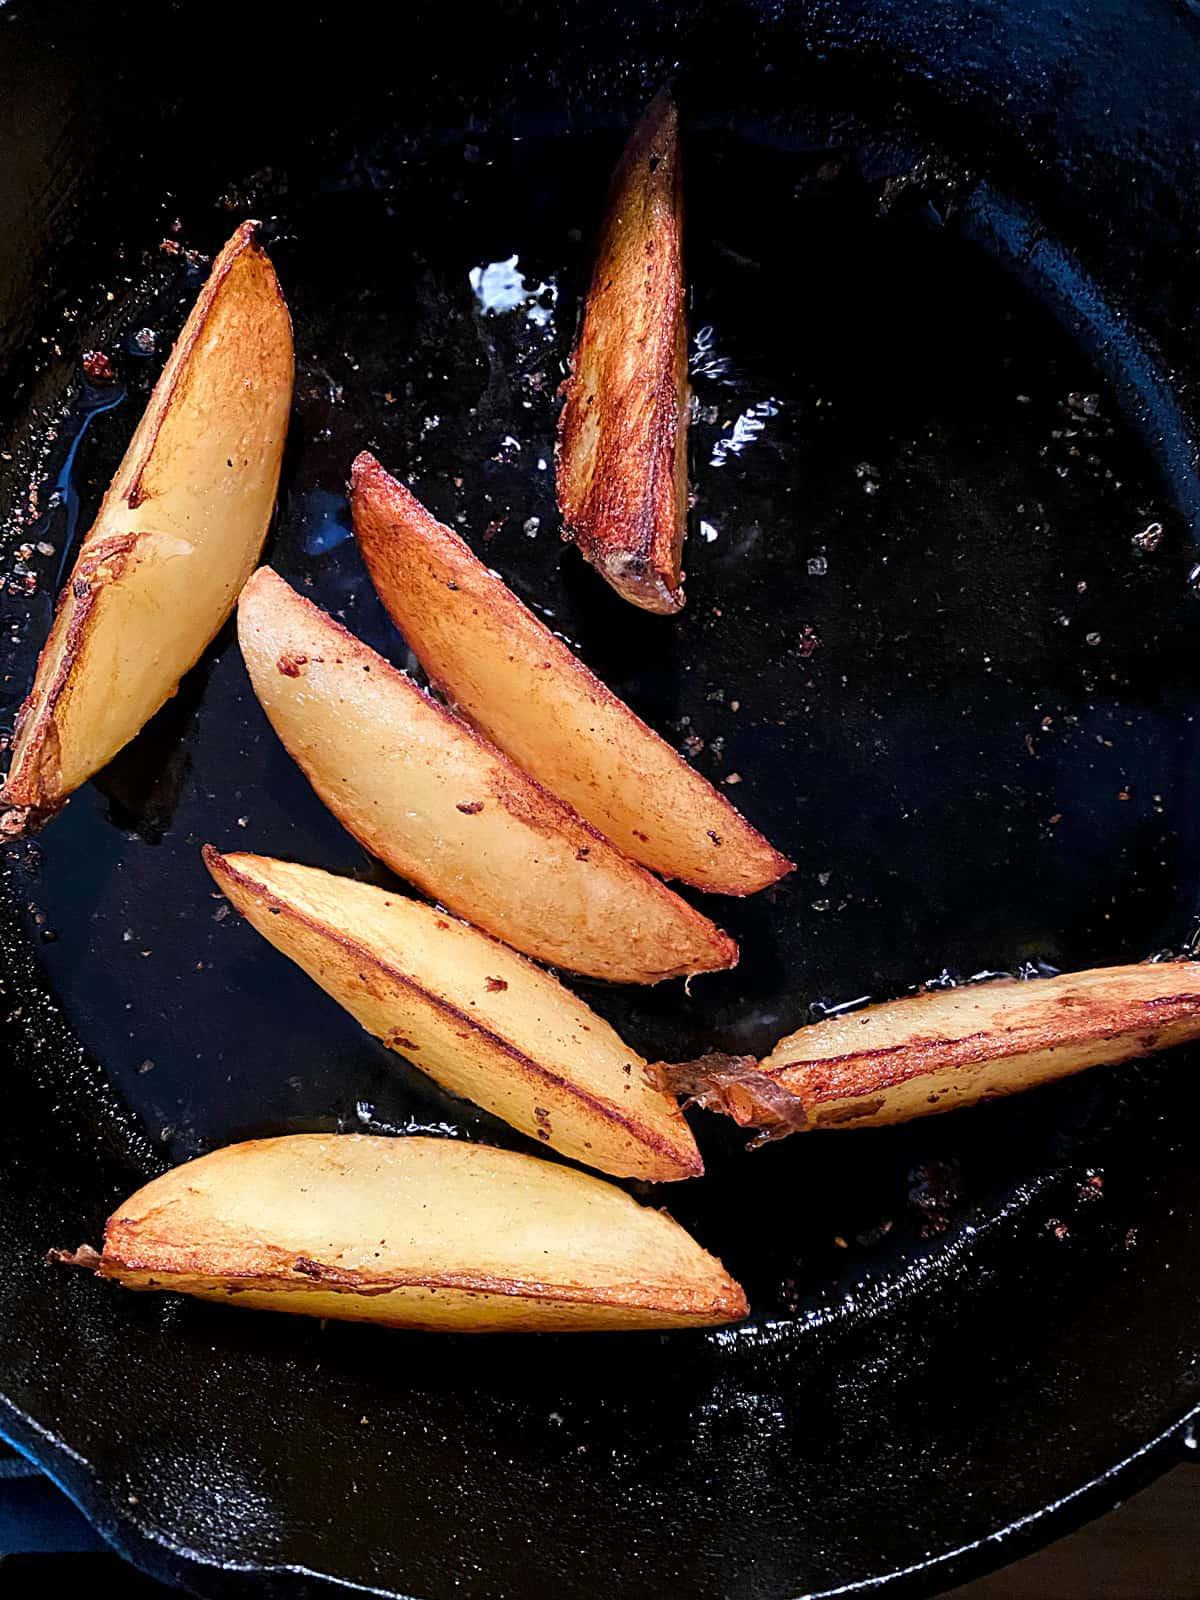 Potato slices frying in a cast iron pan.